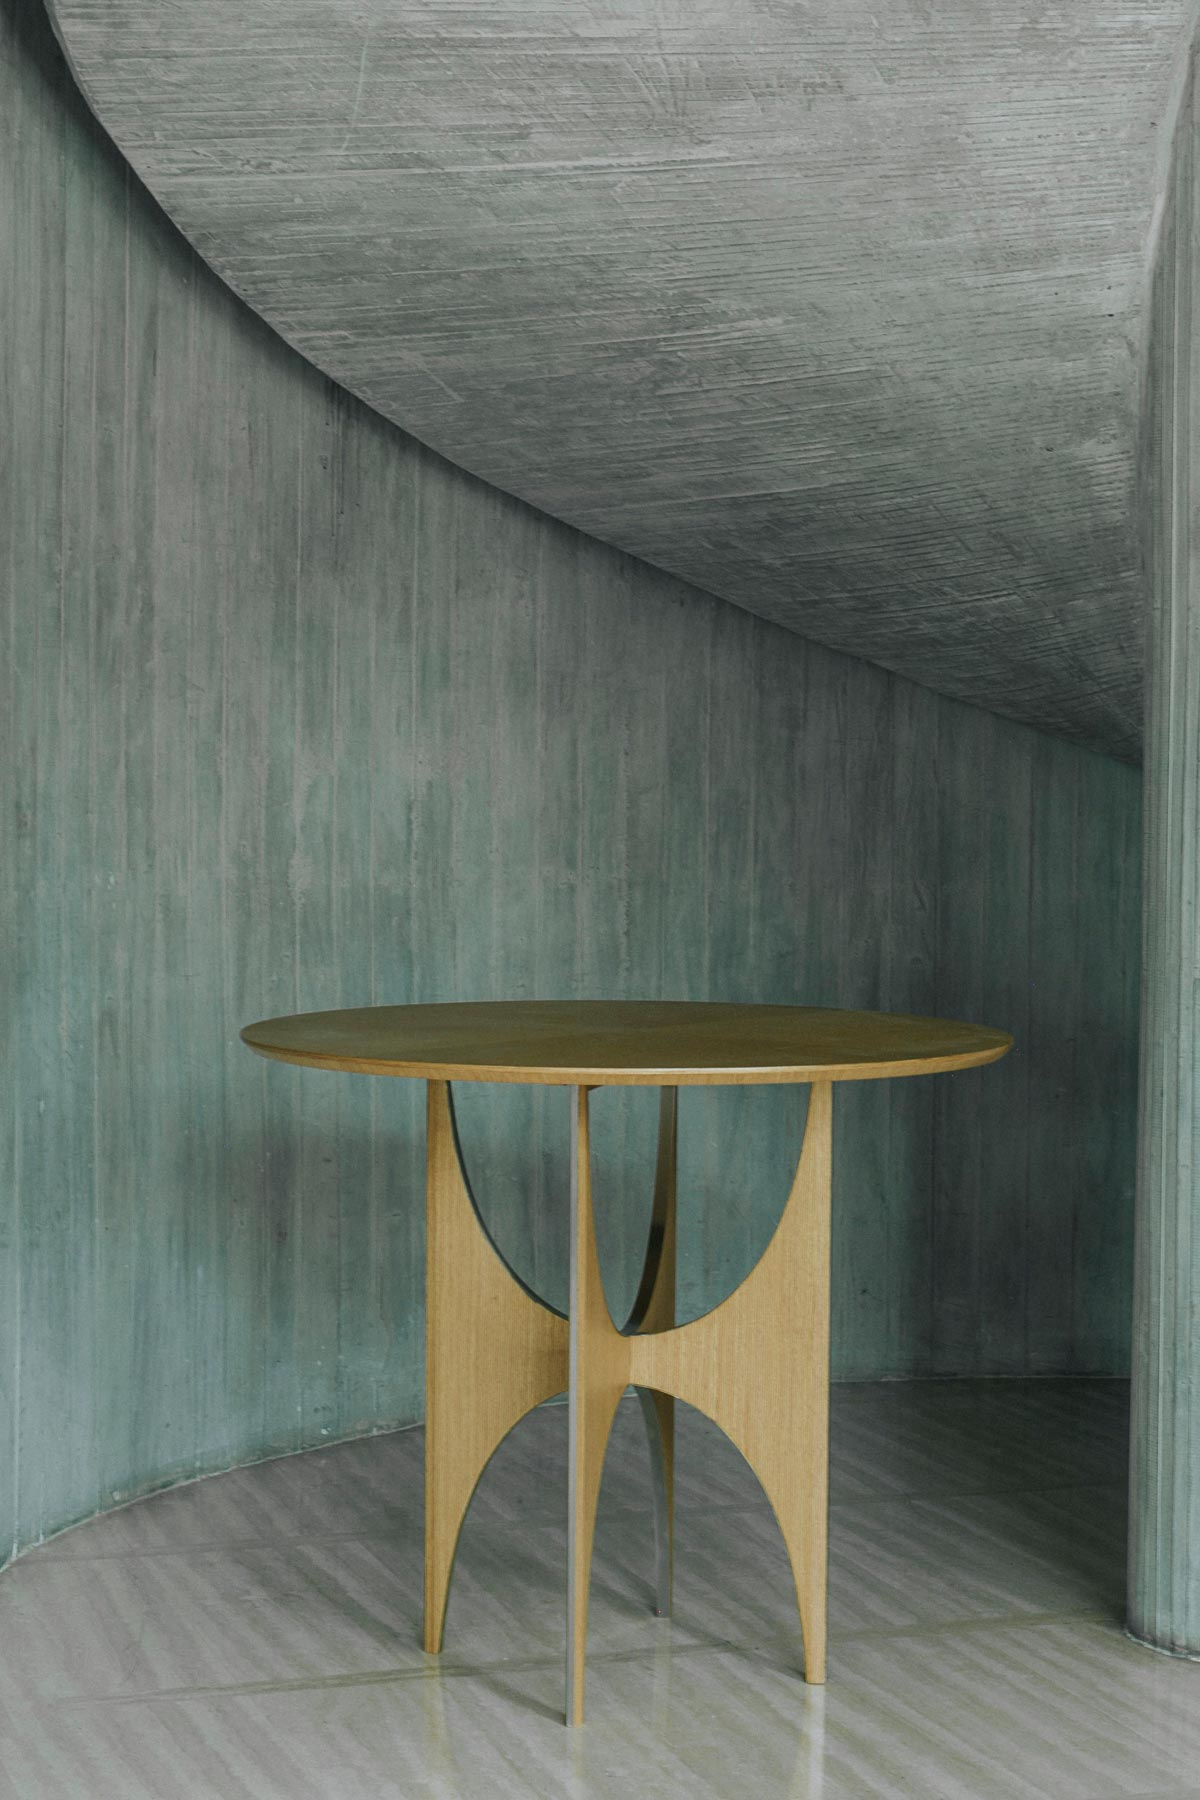 6.2_ARC-ROUND-TABLE-LIGHT_1200x1800